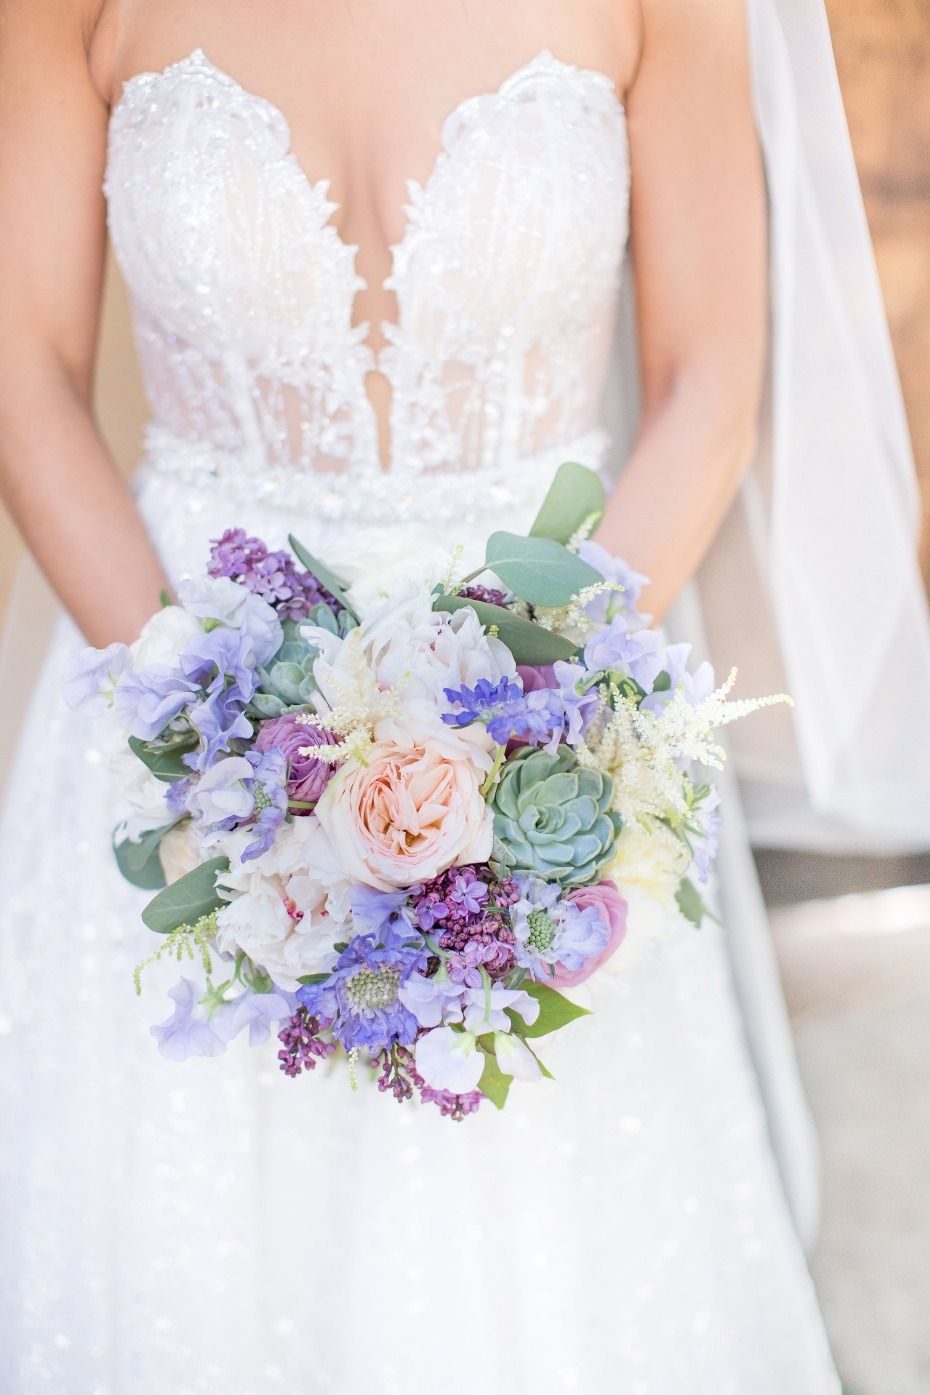 soft and elegant bouquet in blush, lavender and green